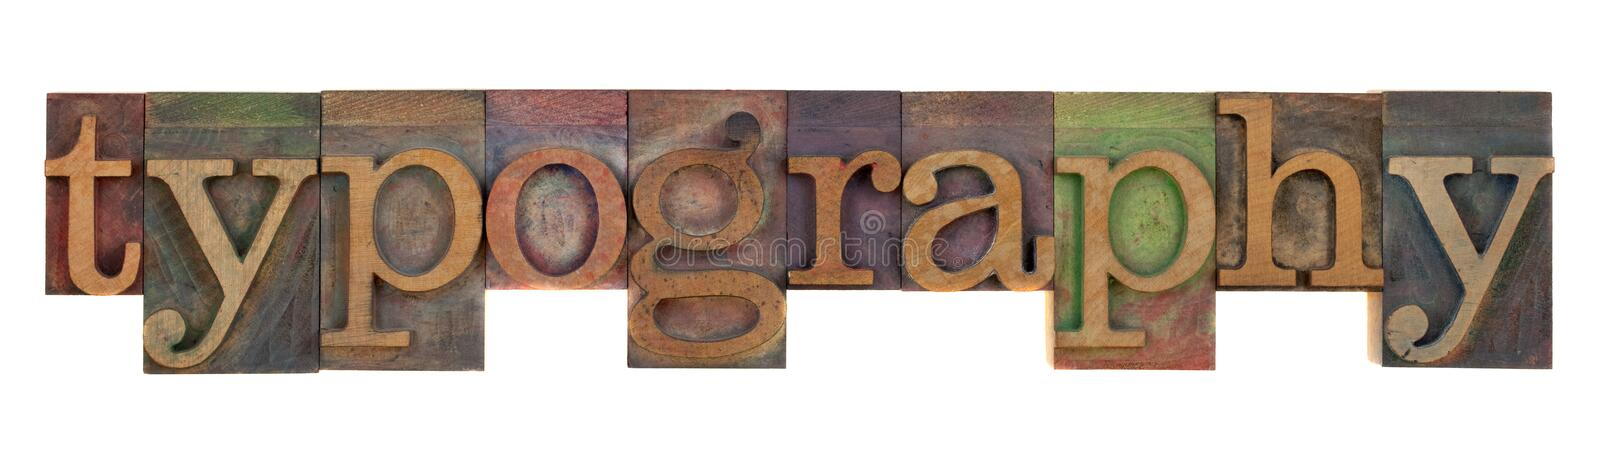 Typography in old letterpress type stock photos